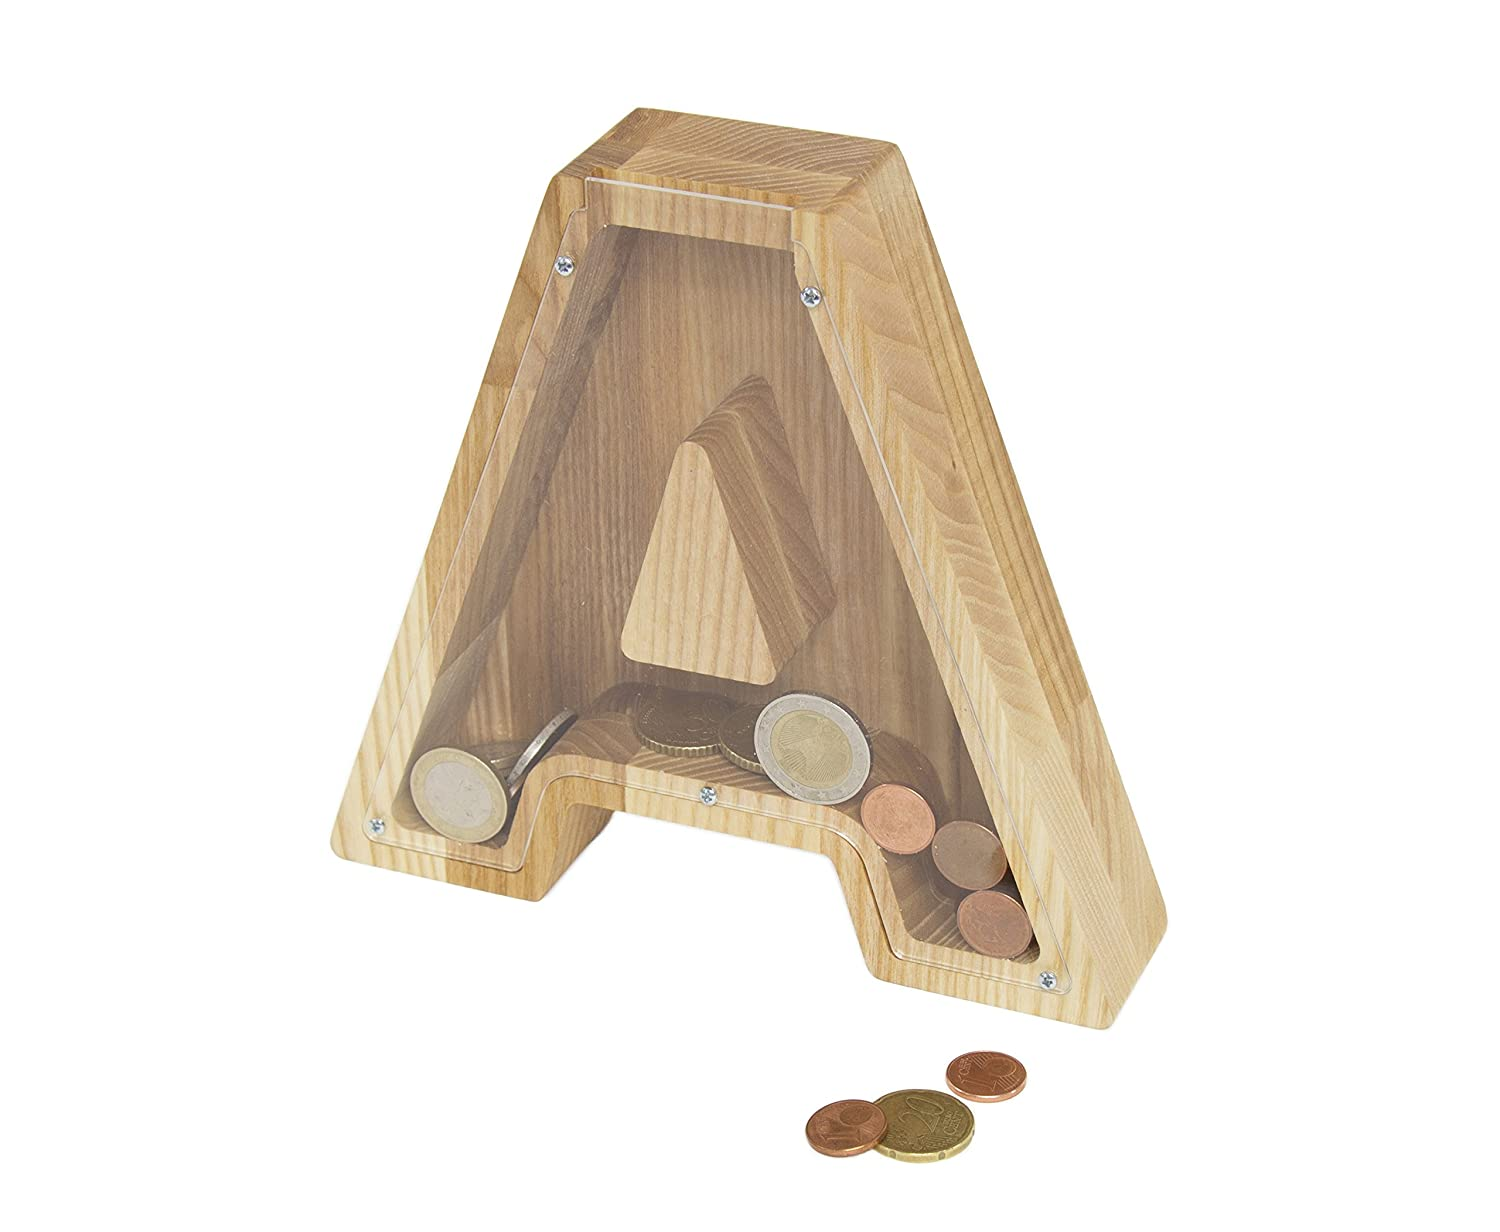 A Letter Money Box Bank - Kids piggy bank - Collecting coin - Money box - Piggy bank - Wood money box - Wooden money box - Babyshower gift - Toddler gift